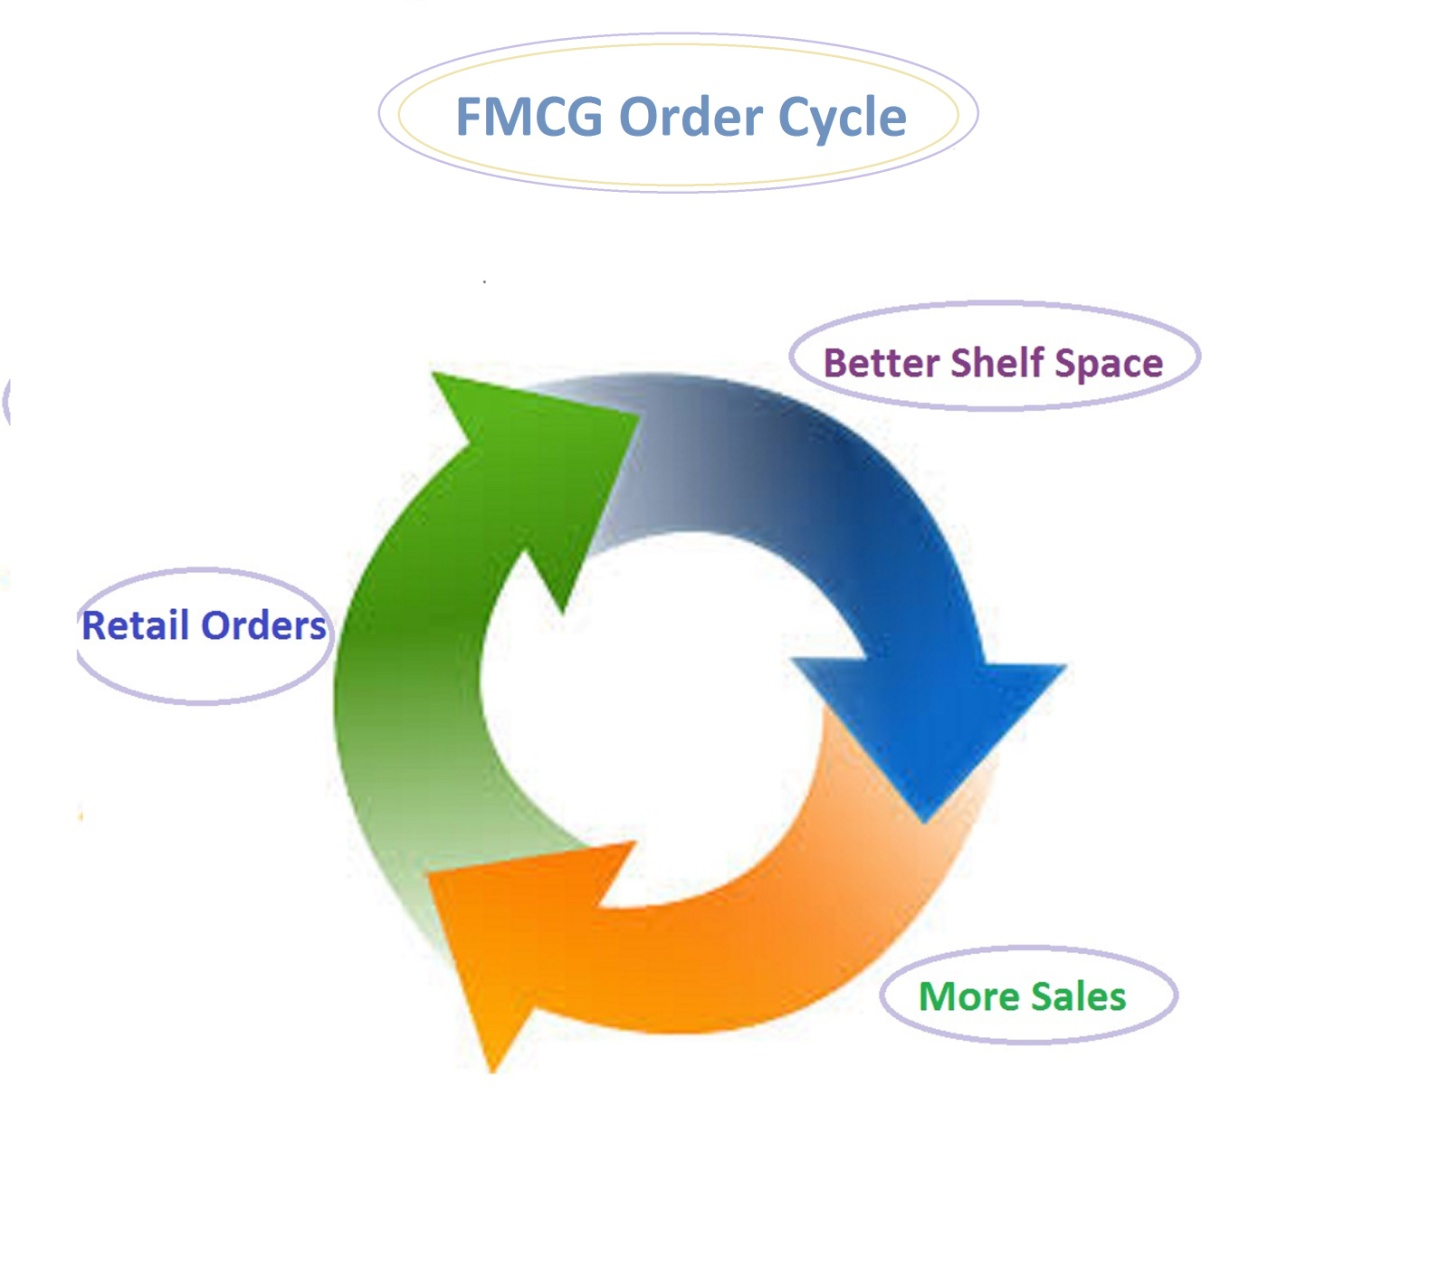 FMCG Order Cycle